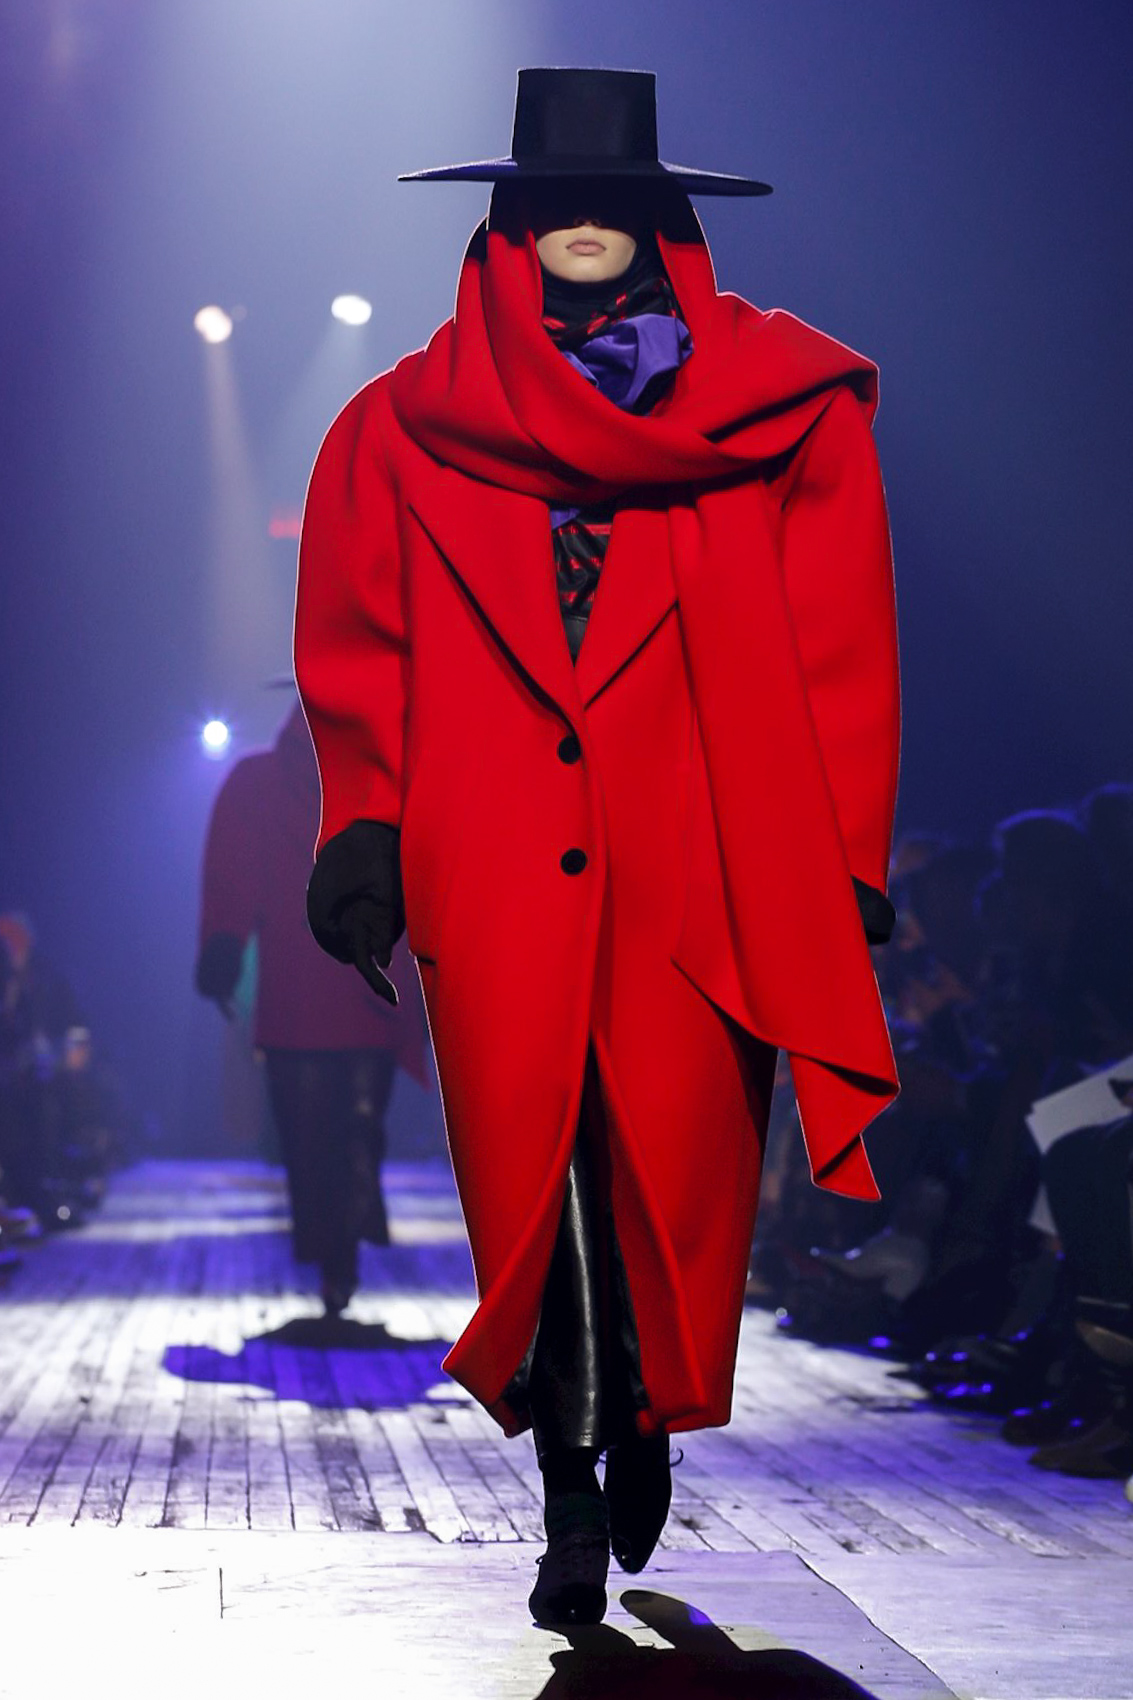 Photo of model in oversized red coat and flamenco black hat from Marc Jacobs Runway Show featuring Marc Jacob's Ready to Wear Collection for Fall/Winter 2018 in NYC